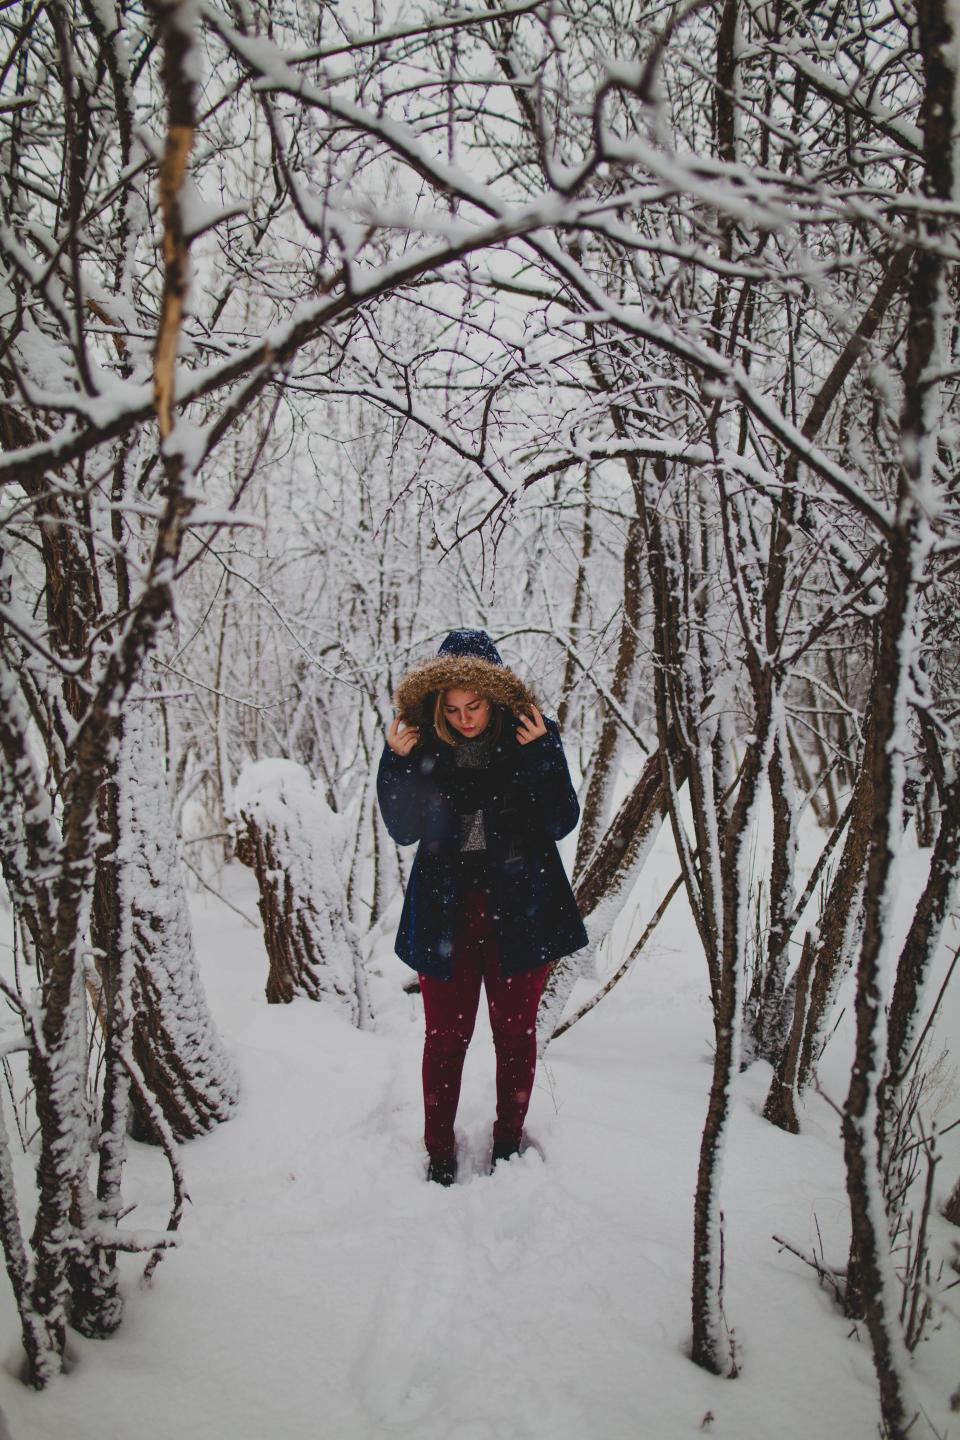 people woman girl snow winter trees plant branch footprint travel nature outdoor